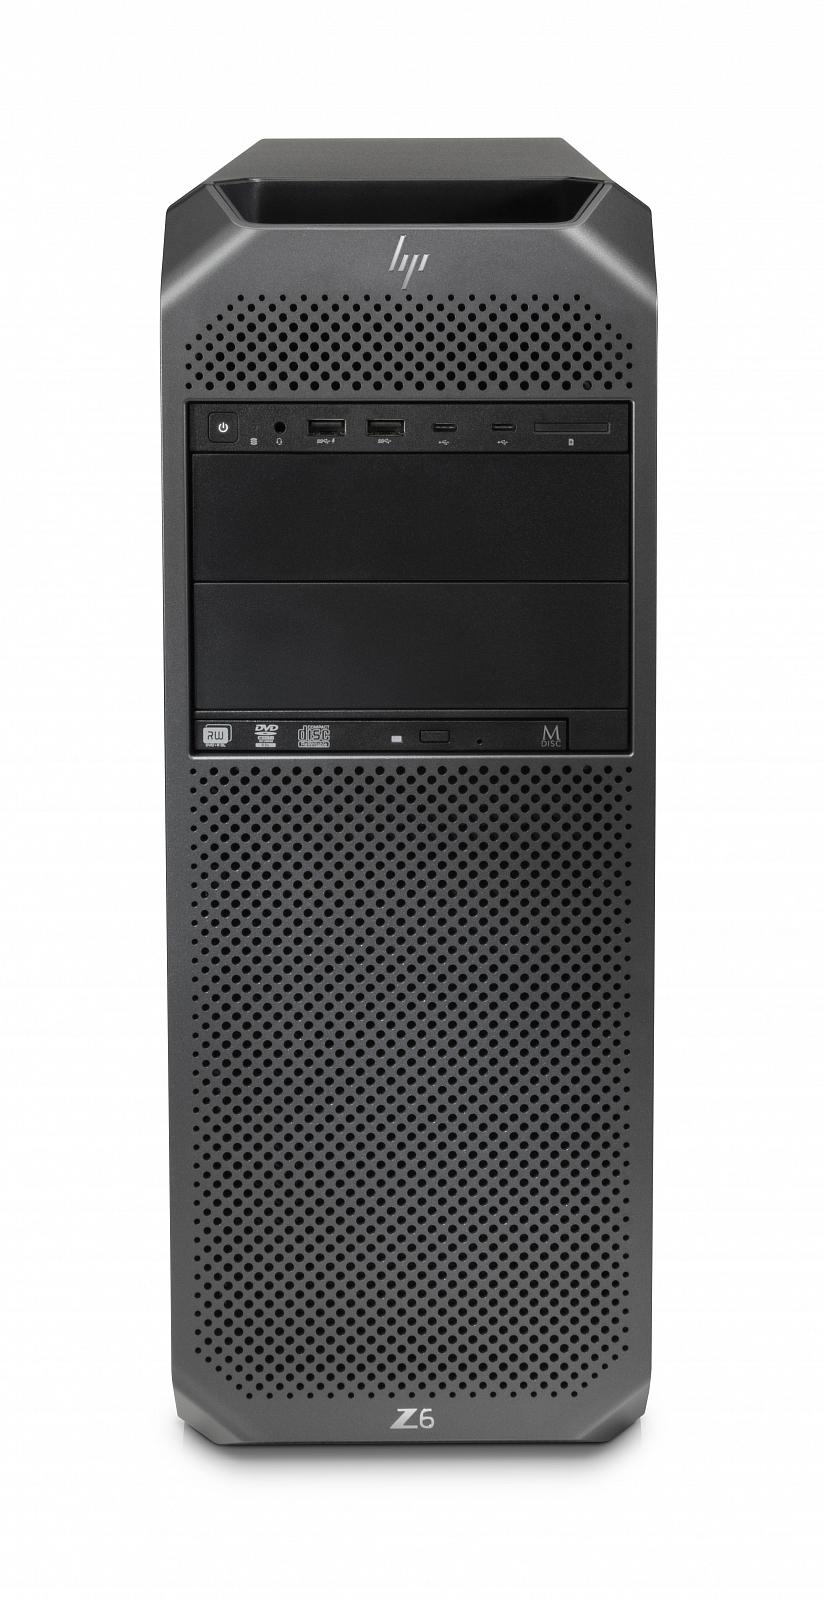 Купить Компьютер HP Z6 G4 Workstation (2WU43EA) фото 2